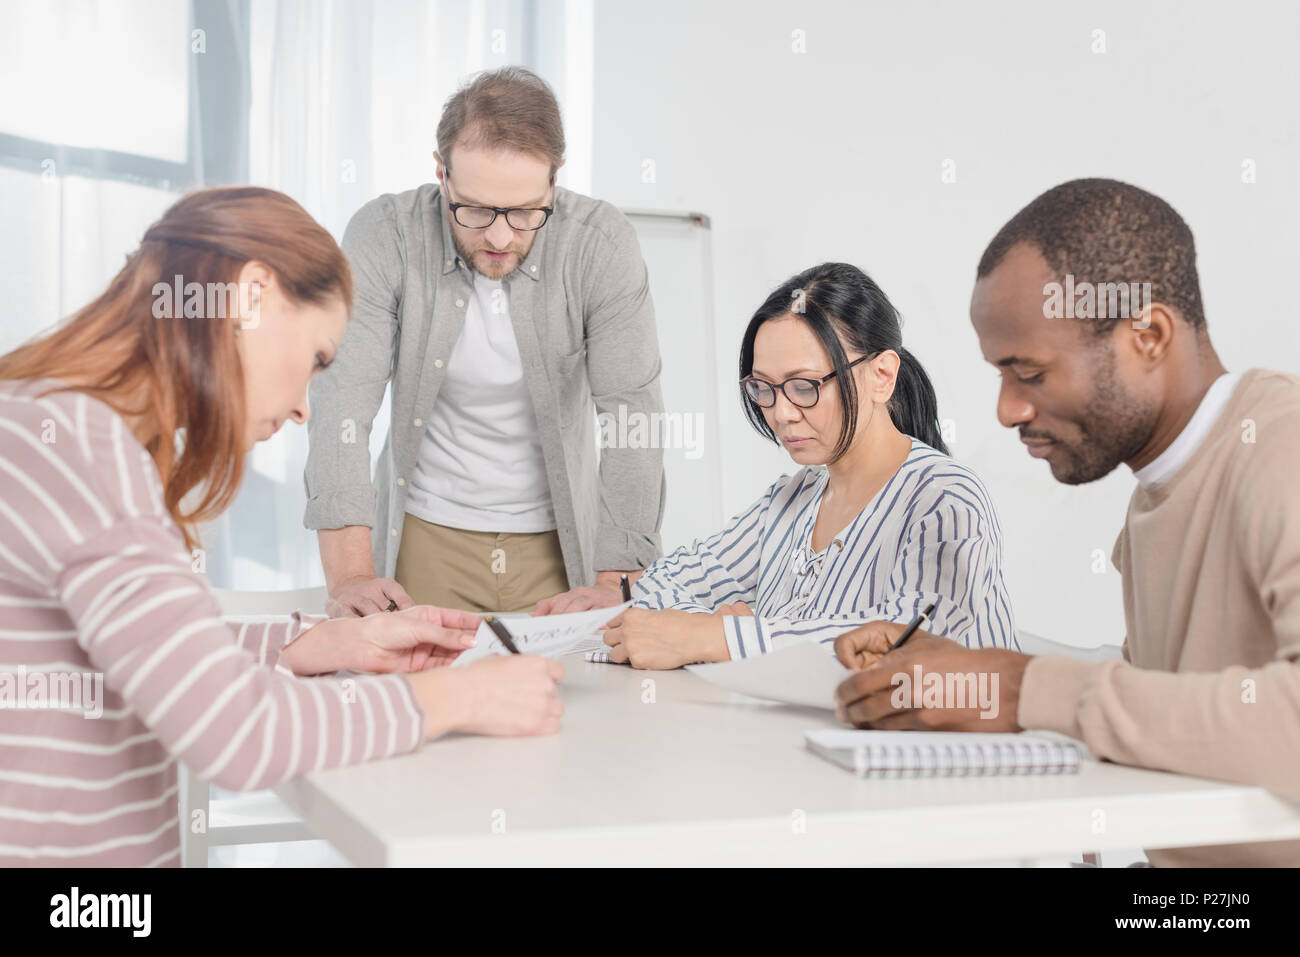 multiethnic middle aged business people working with papers together - Stock Image